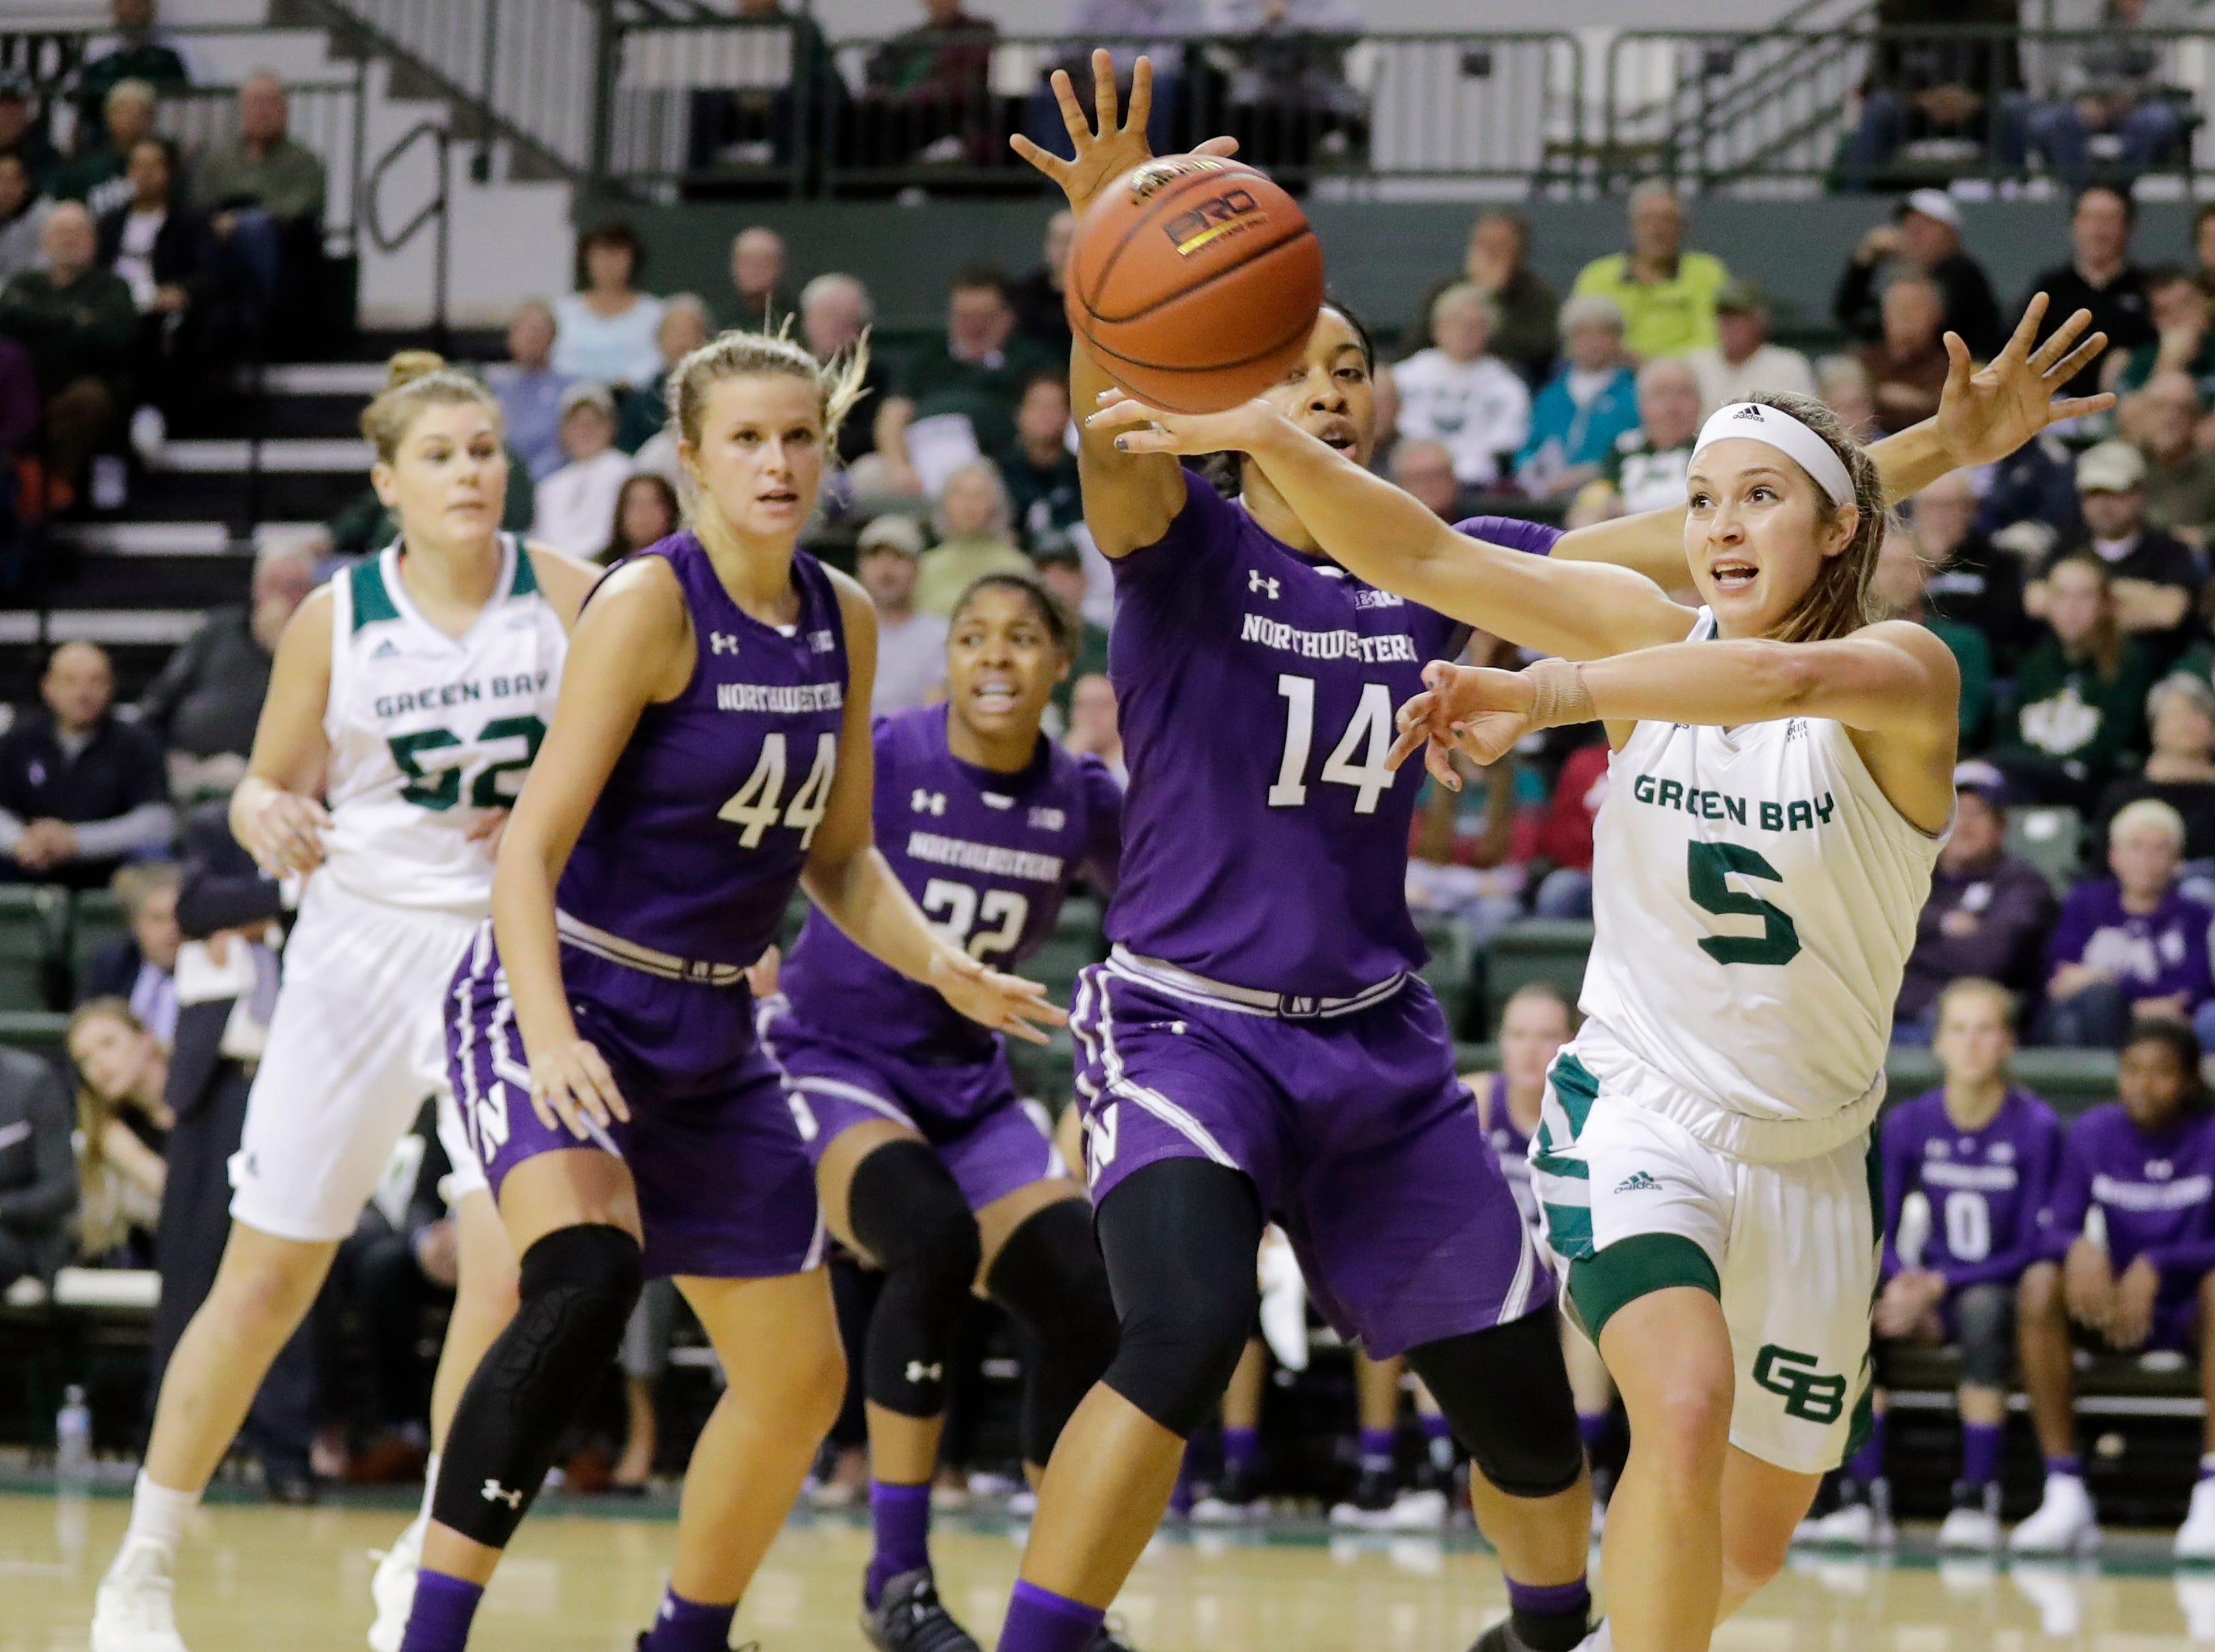 Green Bay Phoenix guard Laken James (5) passes in a women's NCAA basketball game against the Northwestern Wildcats at the Kress Center on Tuesday, November 6, 2018 in Green Bay, Wis.